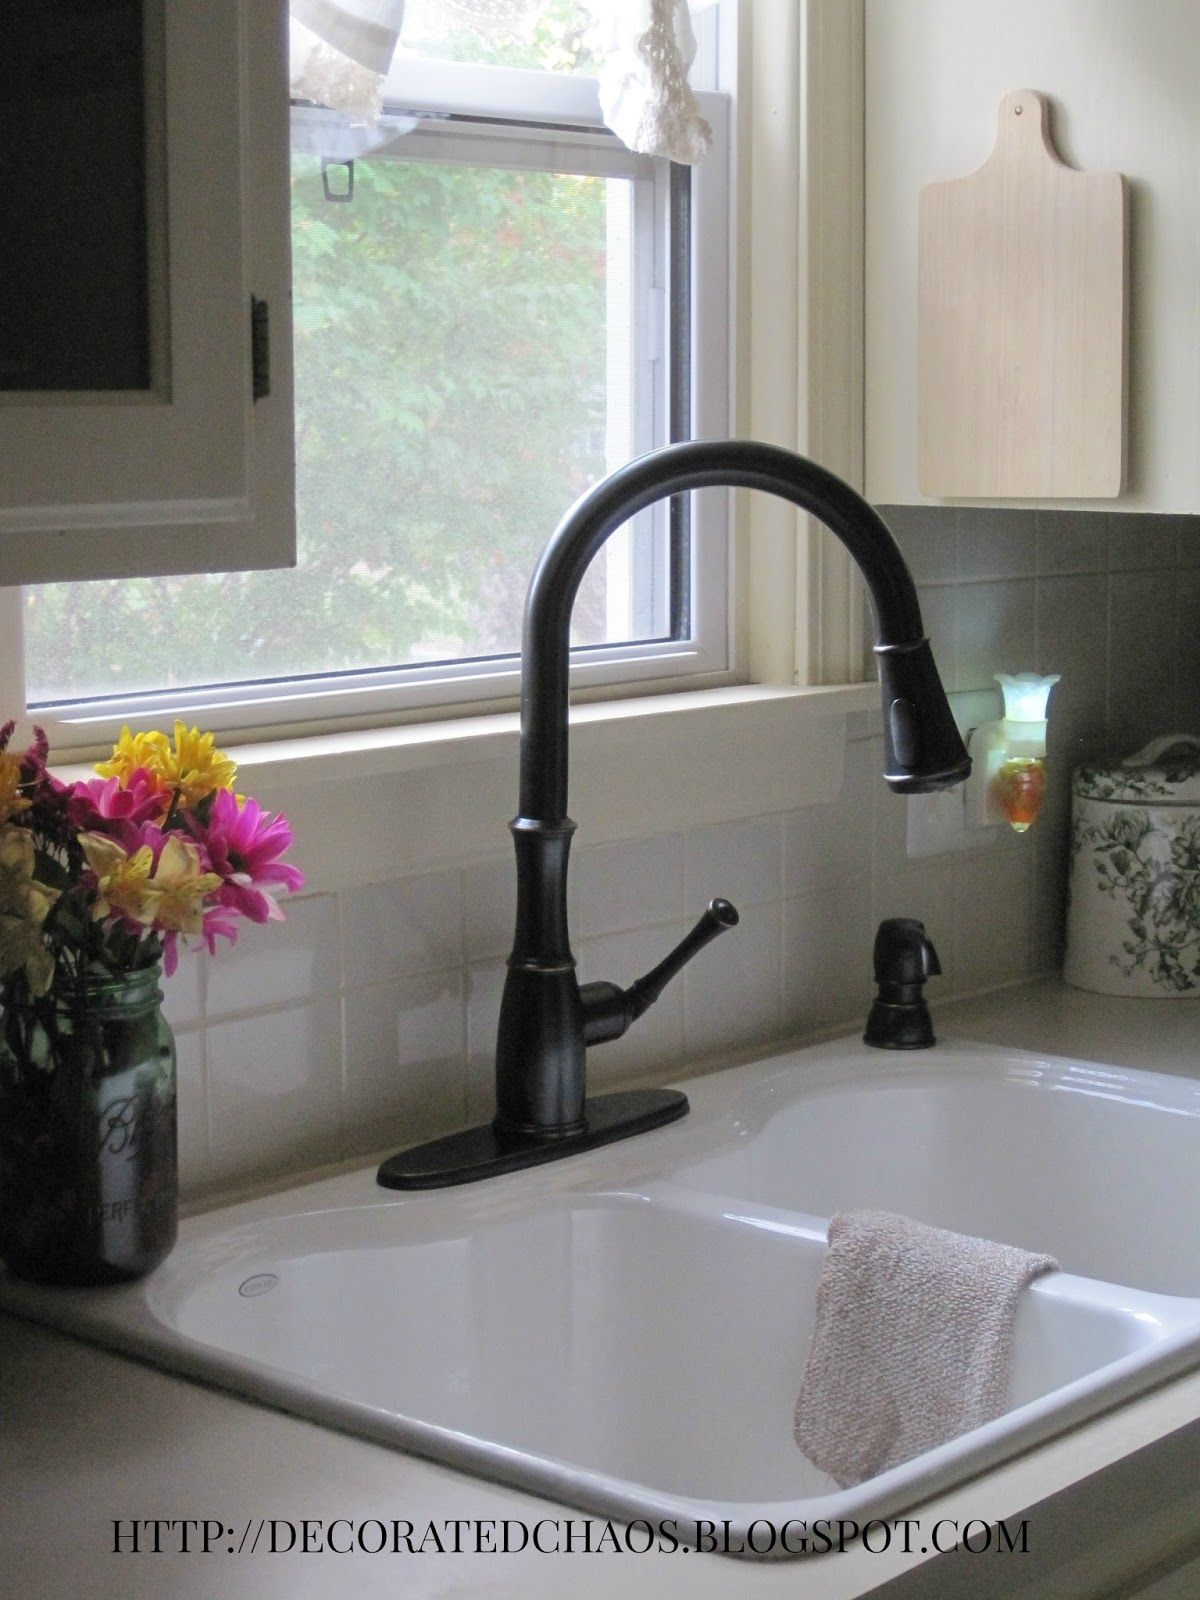 kitchen faucet decorated chaosnew pfister faucet in tuscan bronze and white cast iron sink